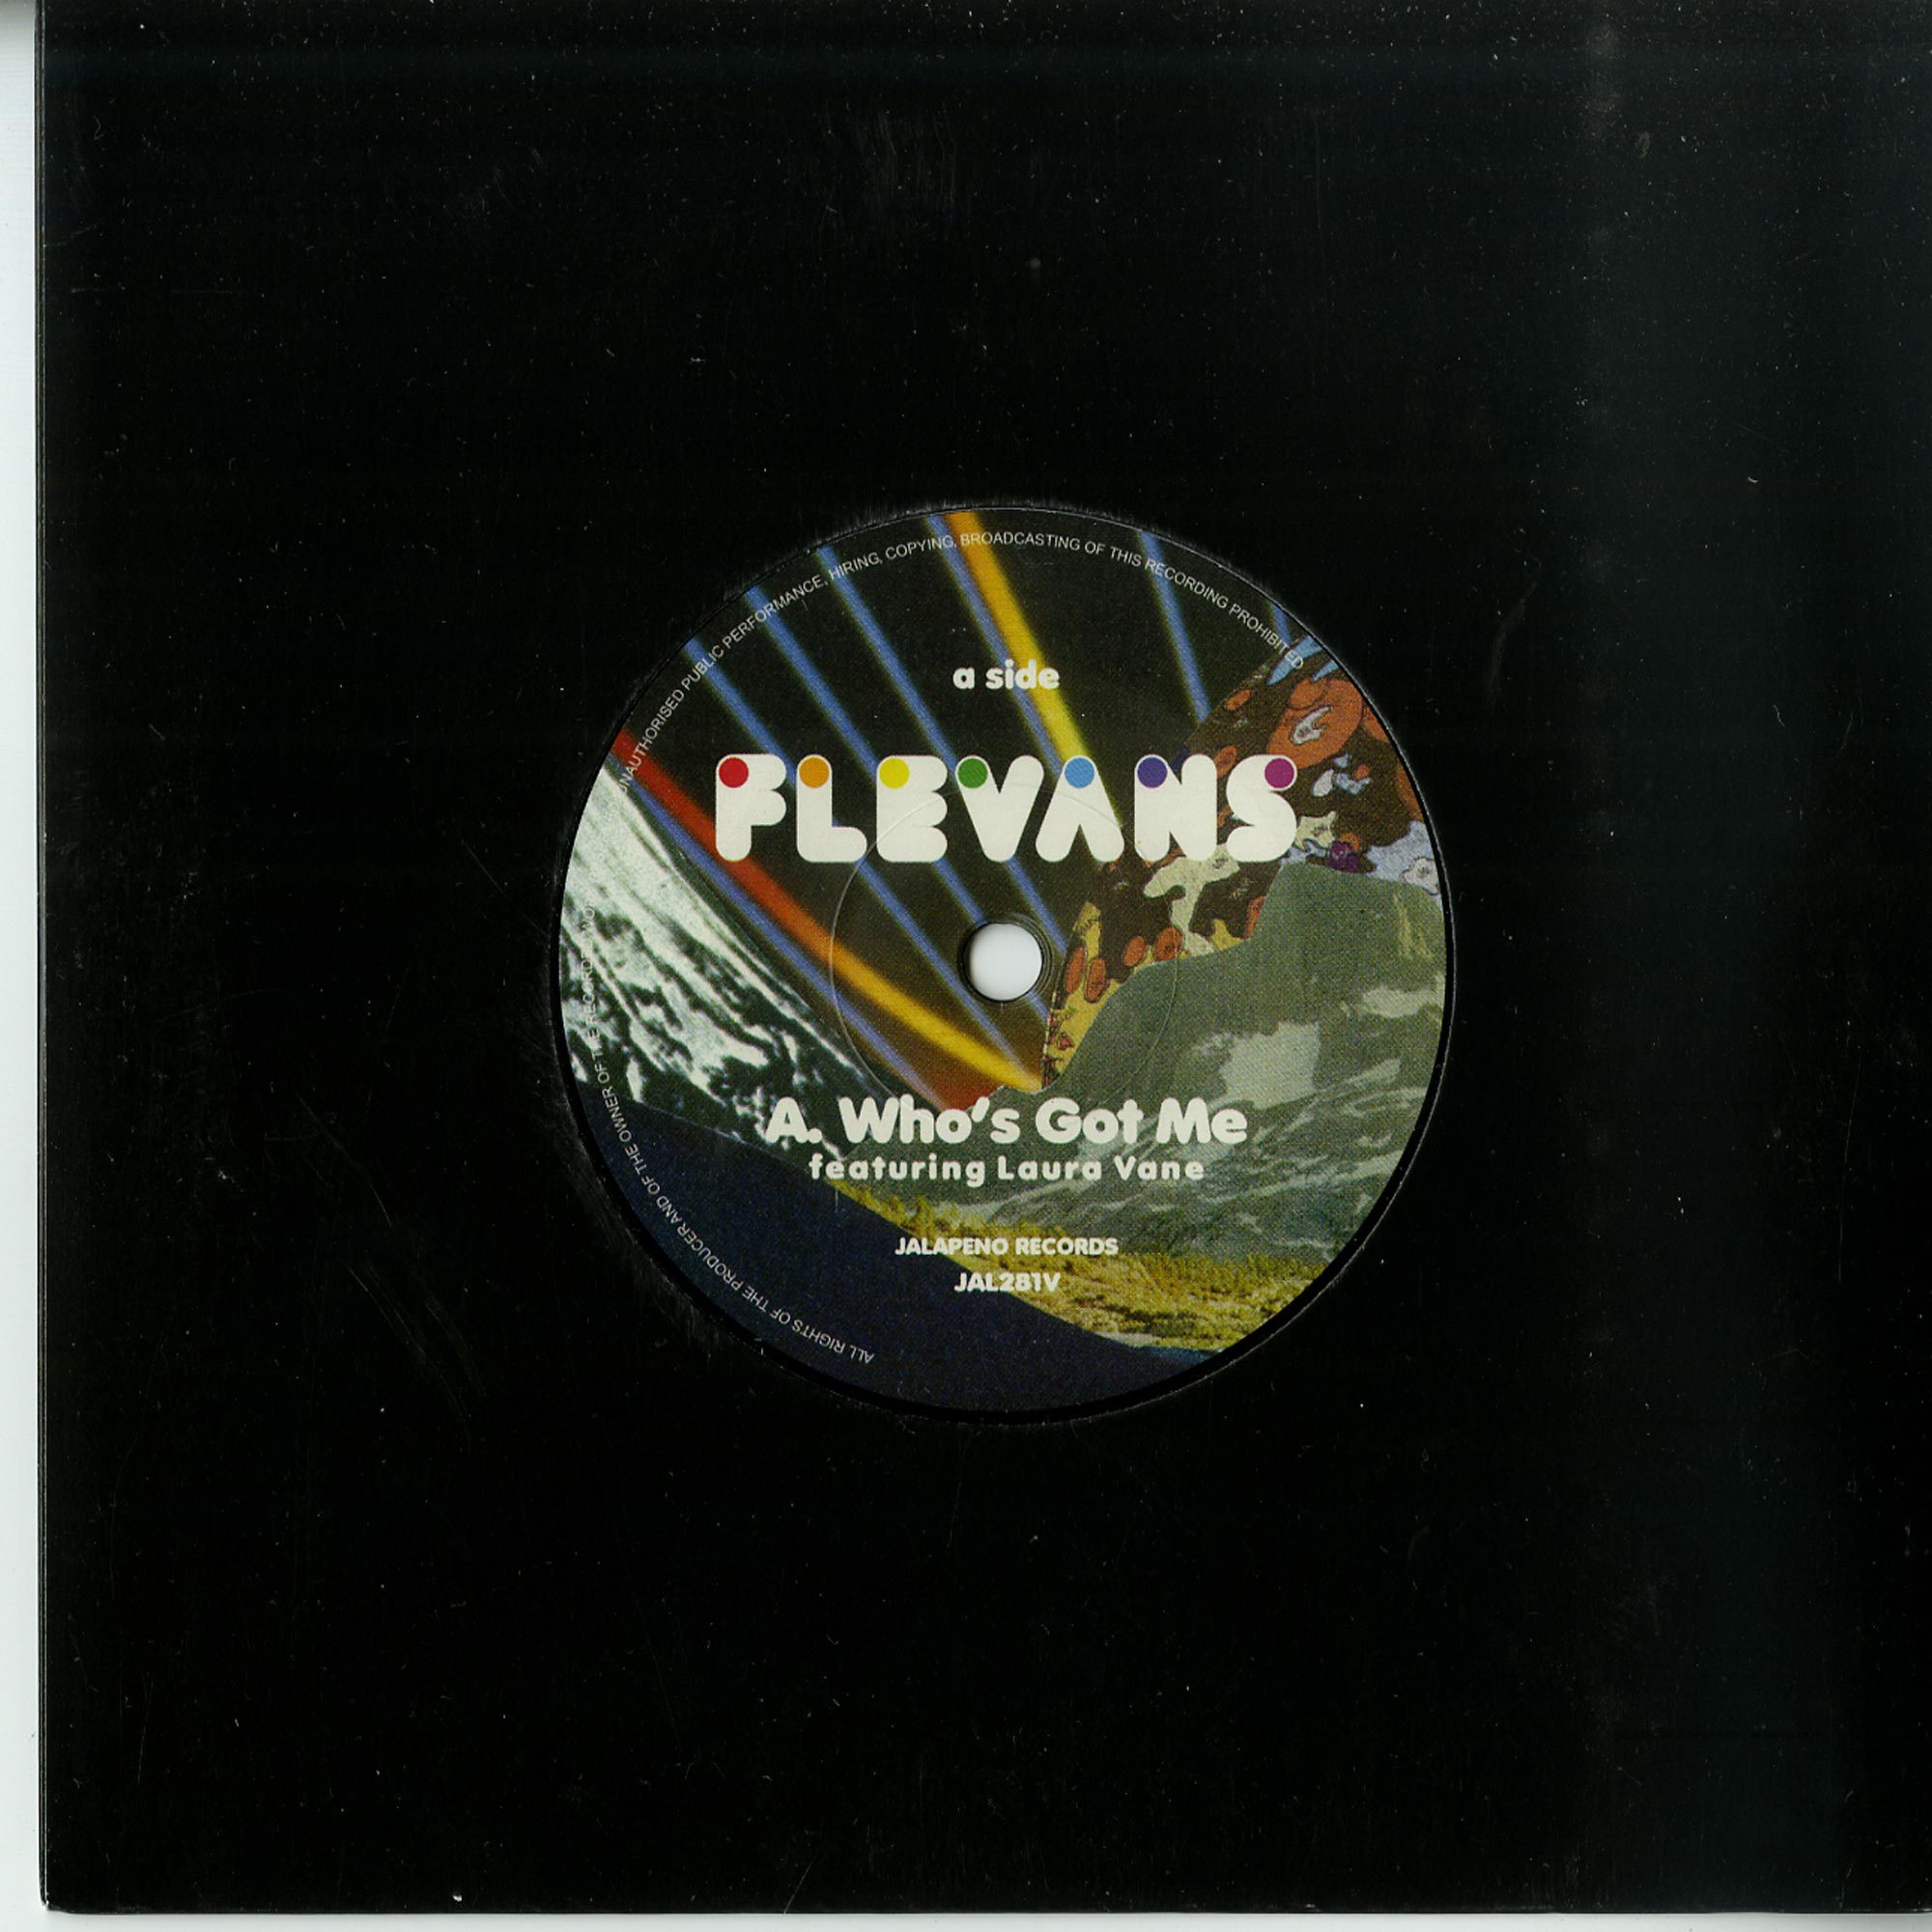 Flevans - WHO S GOT ME / TAKE YOUR MONEY